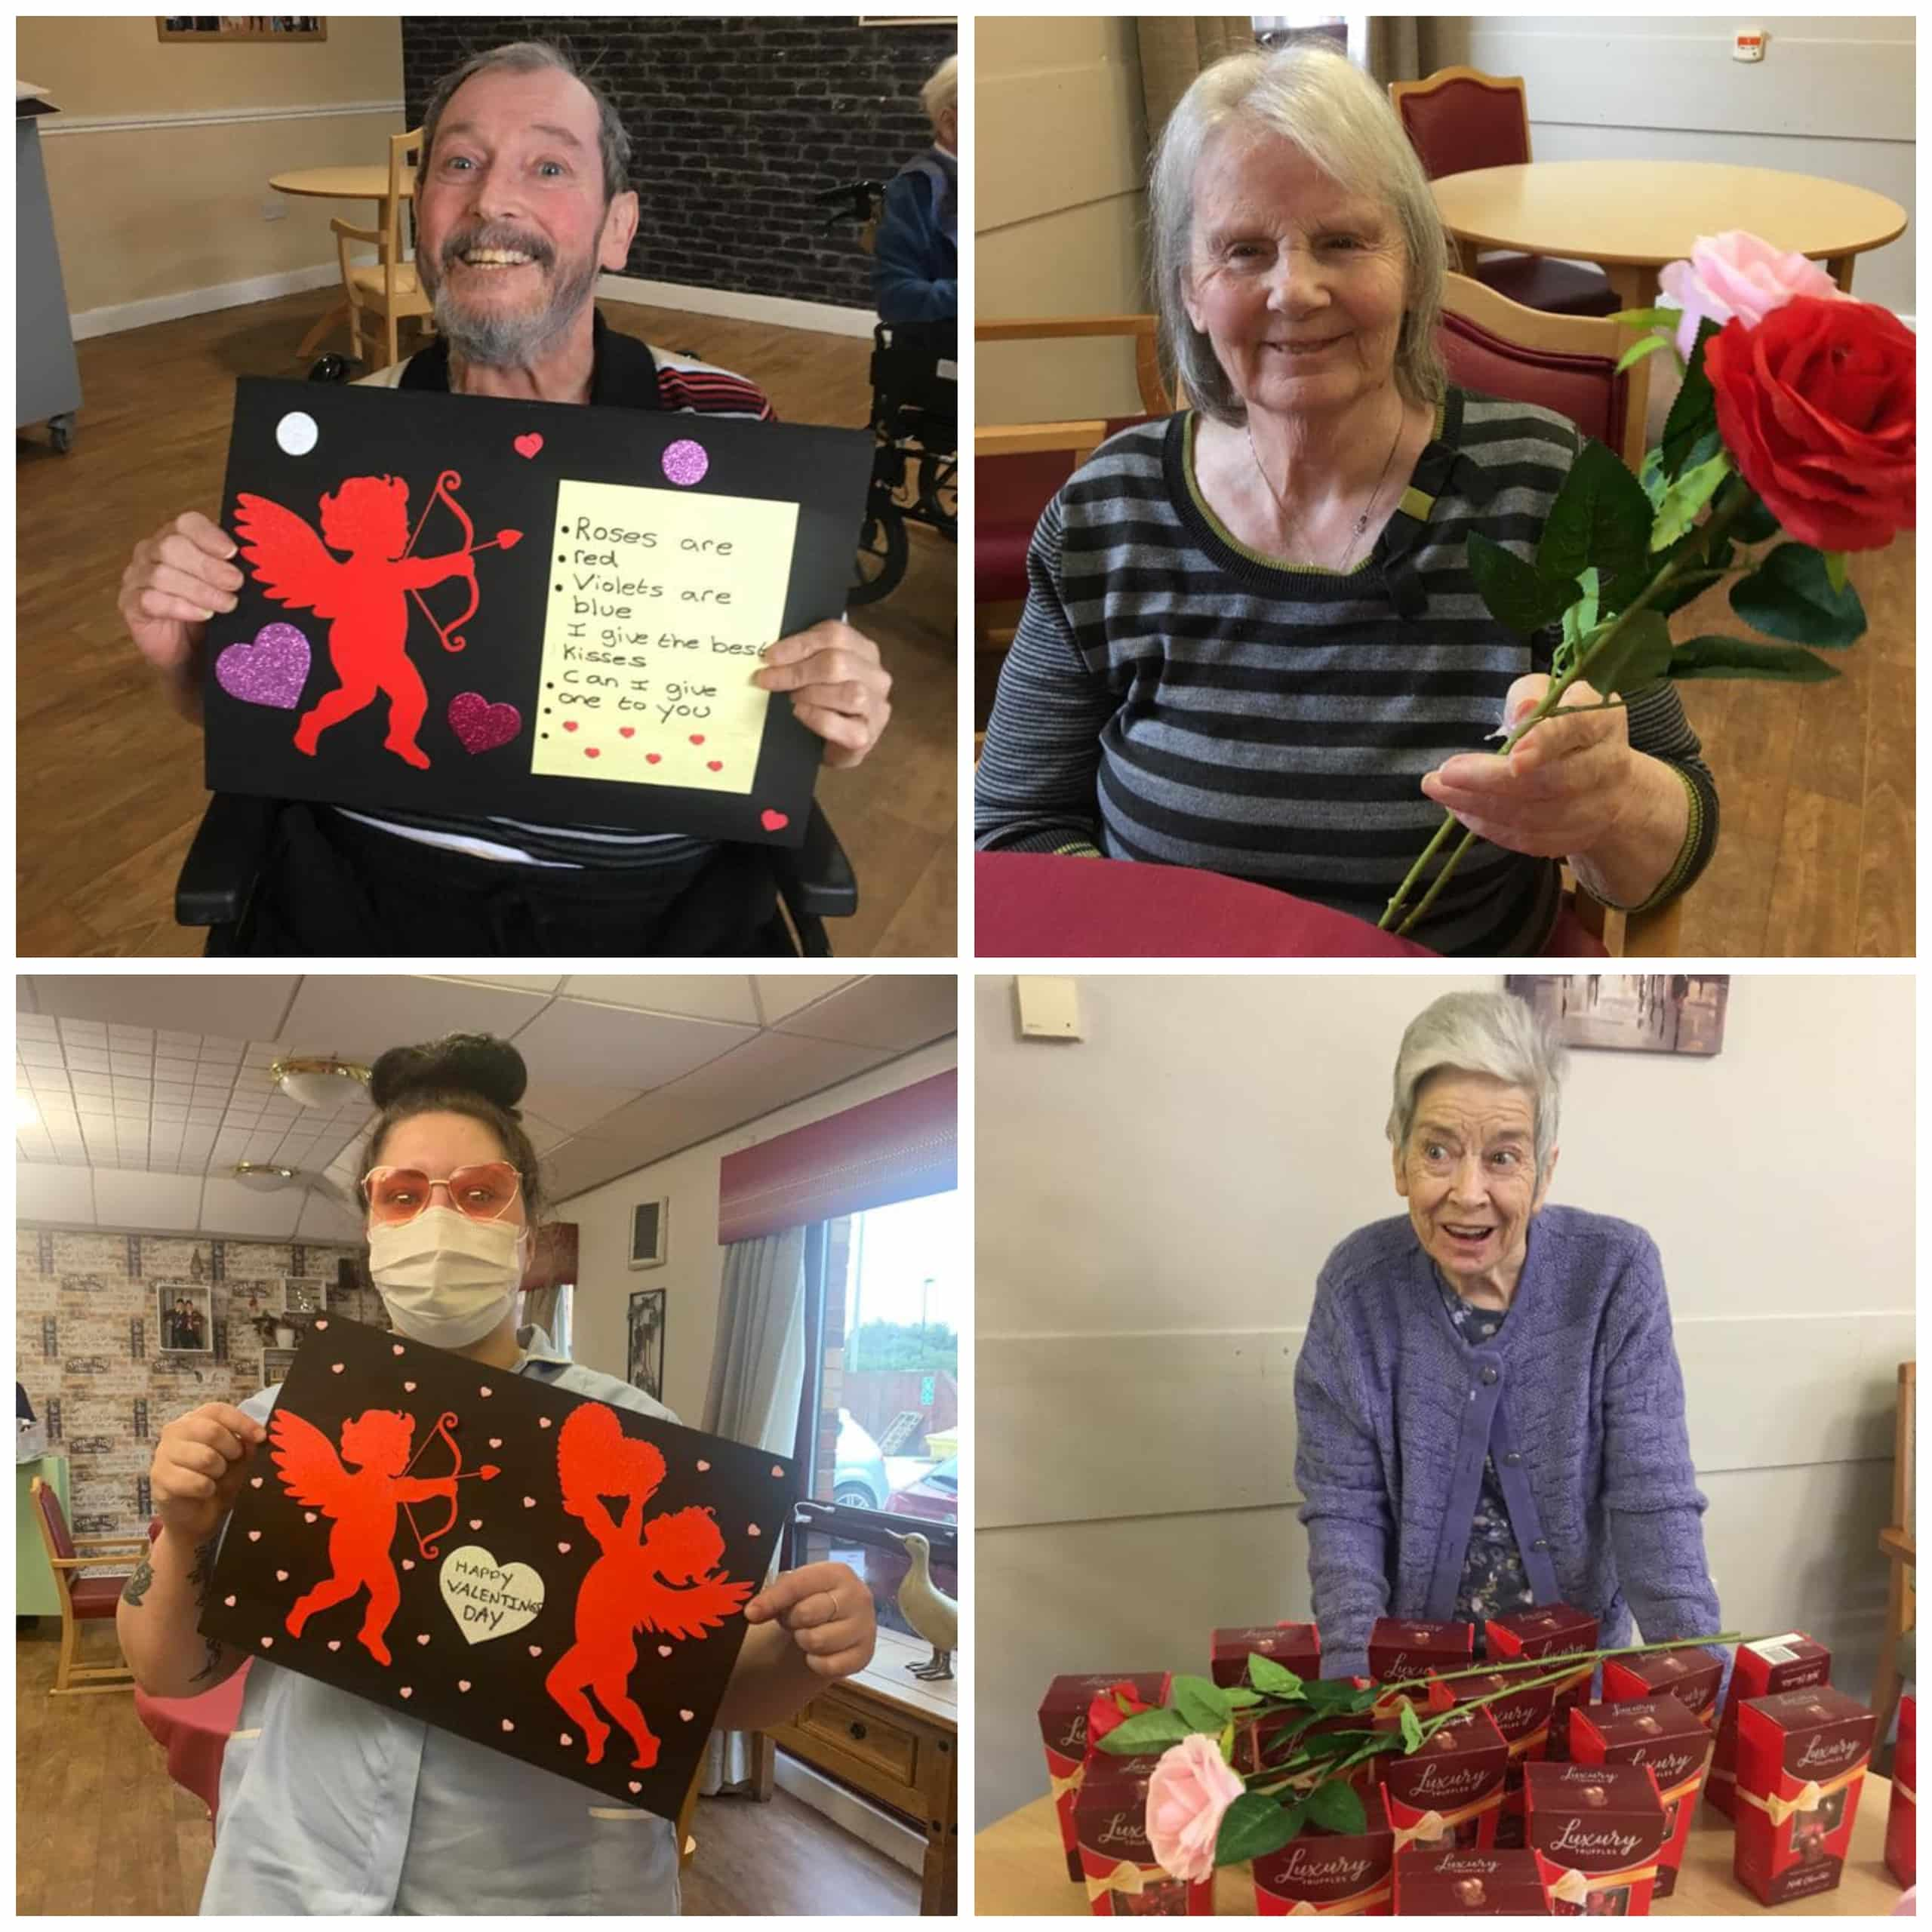 Residents at North Shield-based care home Appleby with their Valentine's Day crafts, chocolates and flowers.